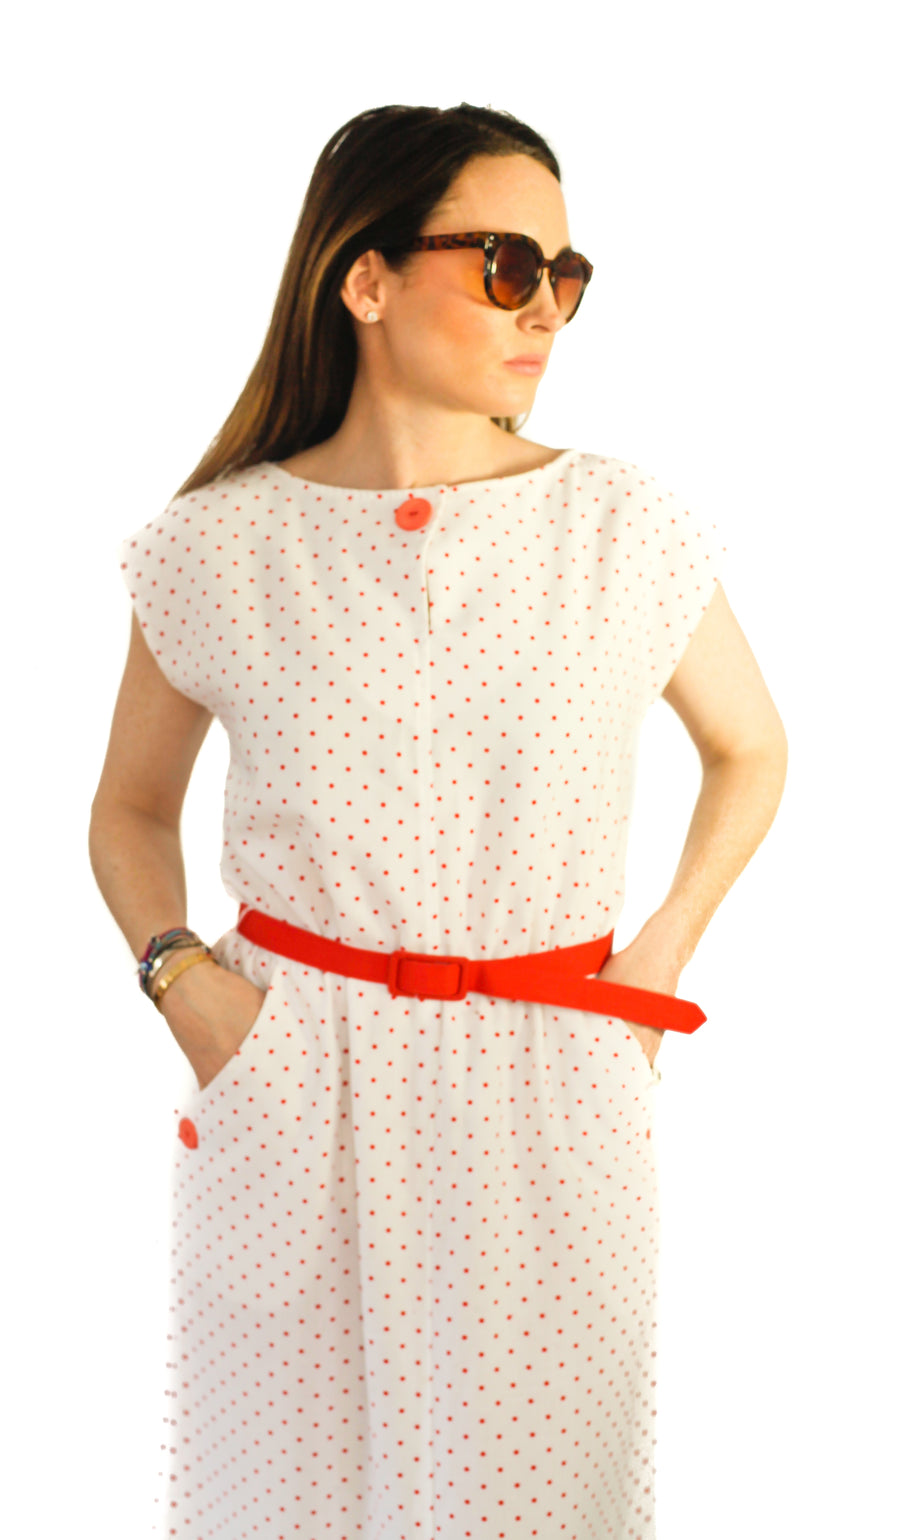 Vintage white and red polka dot dress